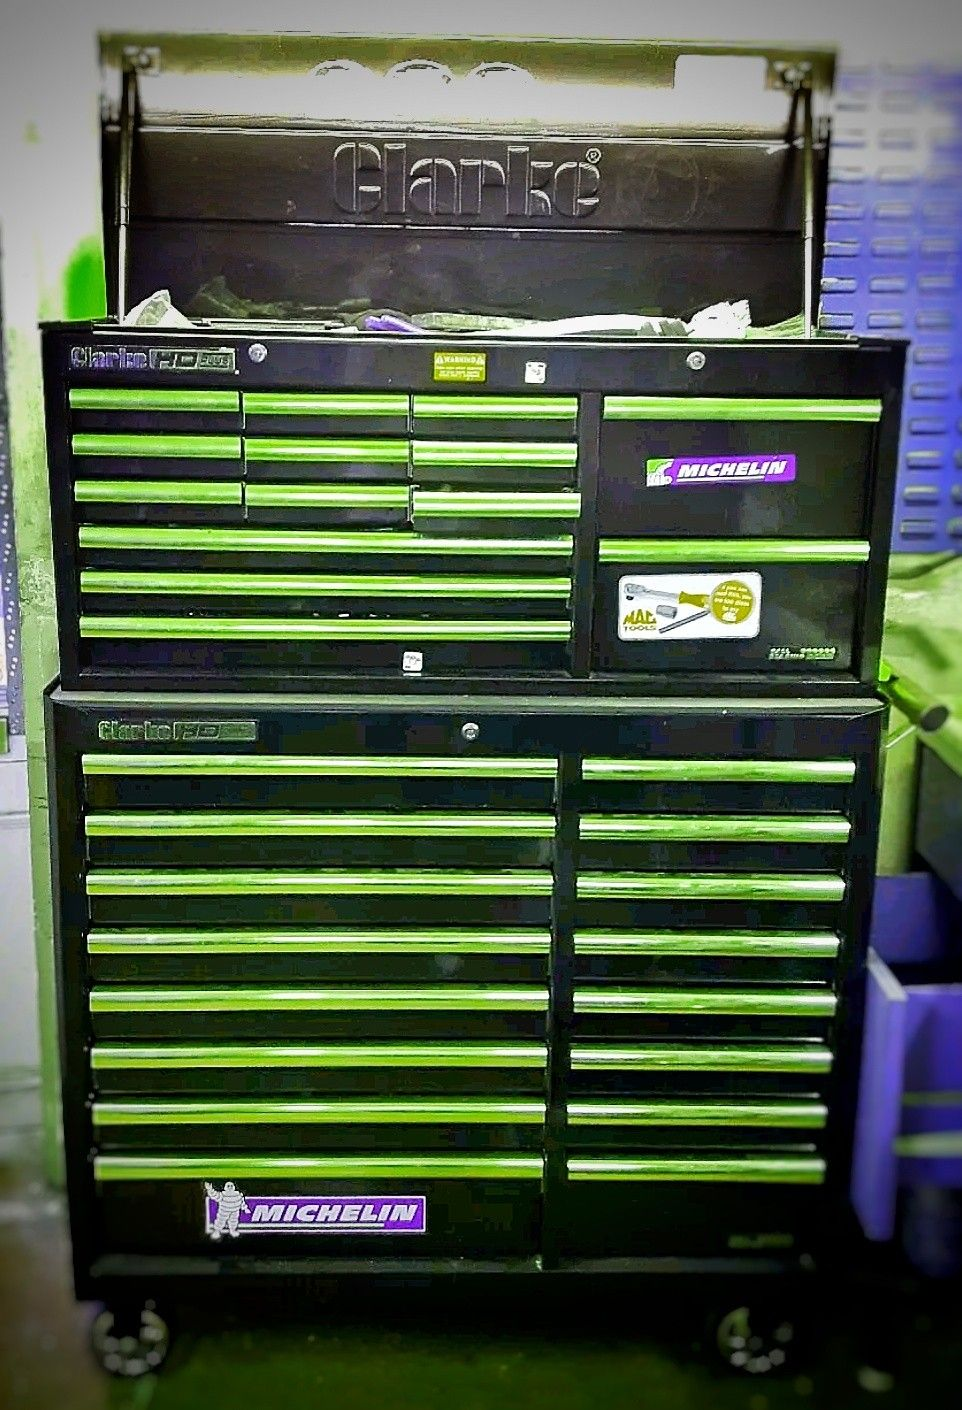 Clarke Hd Tool Chest Roll Cab Wood Crafting Tools Tool Chest Craft Tools